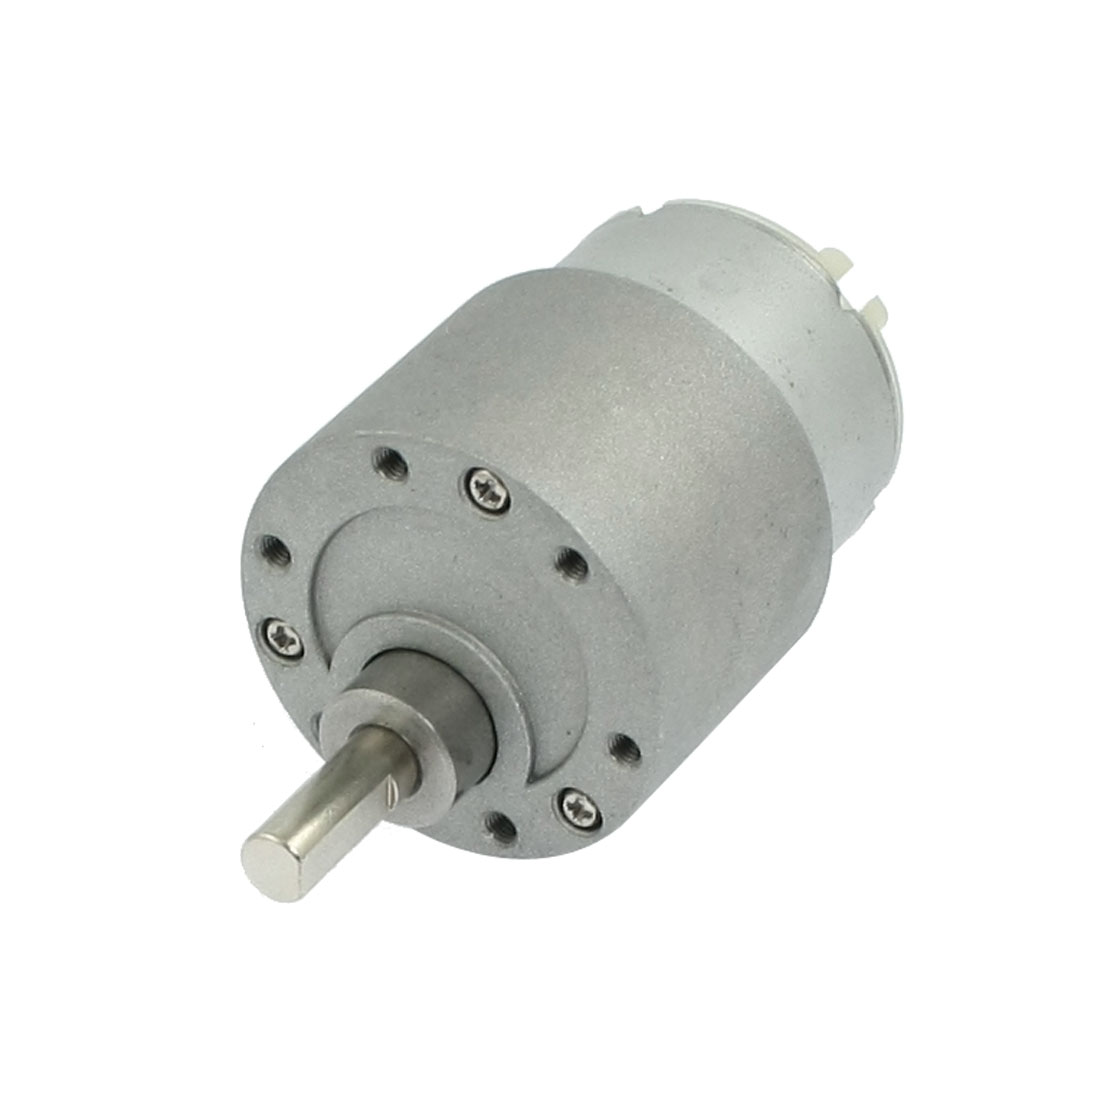 DC 12V 30mA 30RPM 36mm Dia Gearbox Electric DC Geared Motor